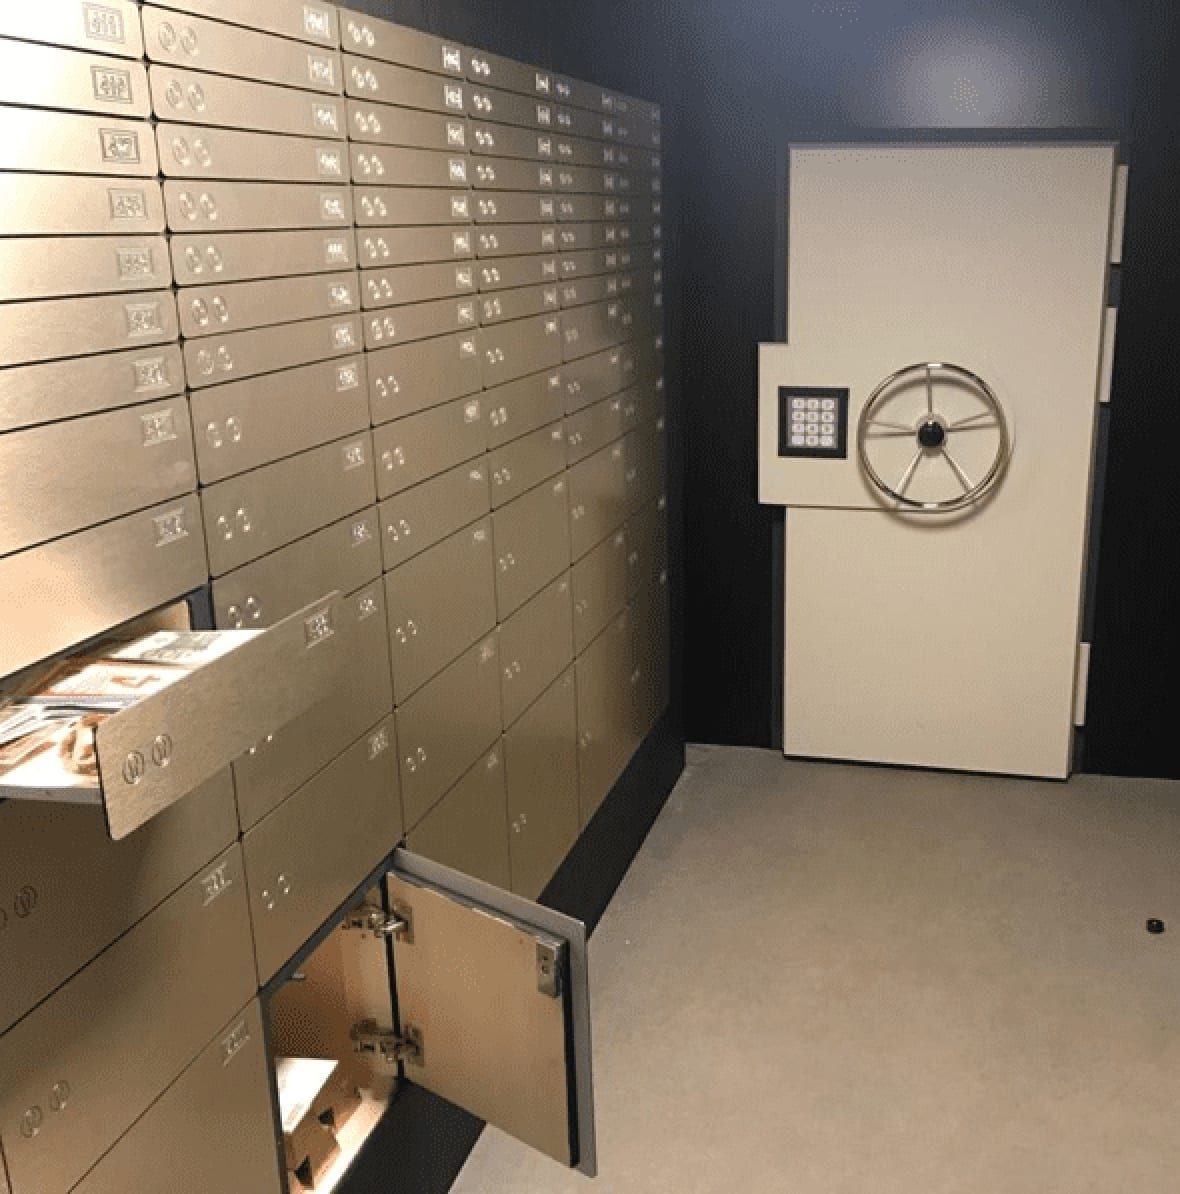 Escape room – Room with several safe drawers